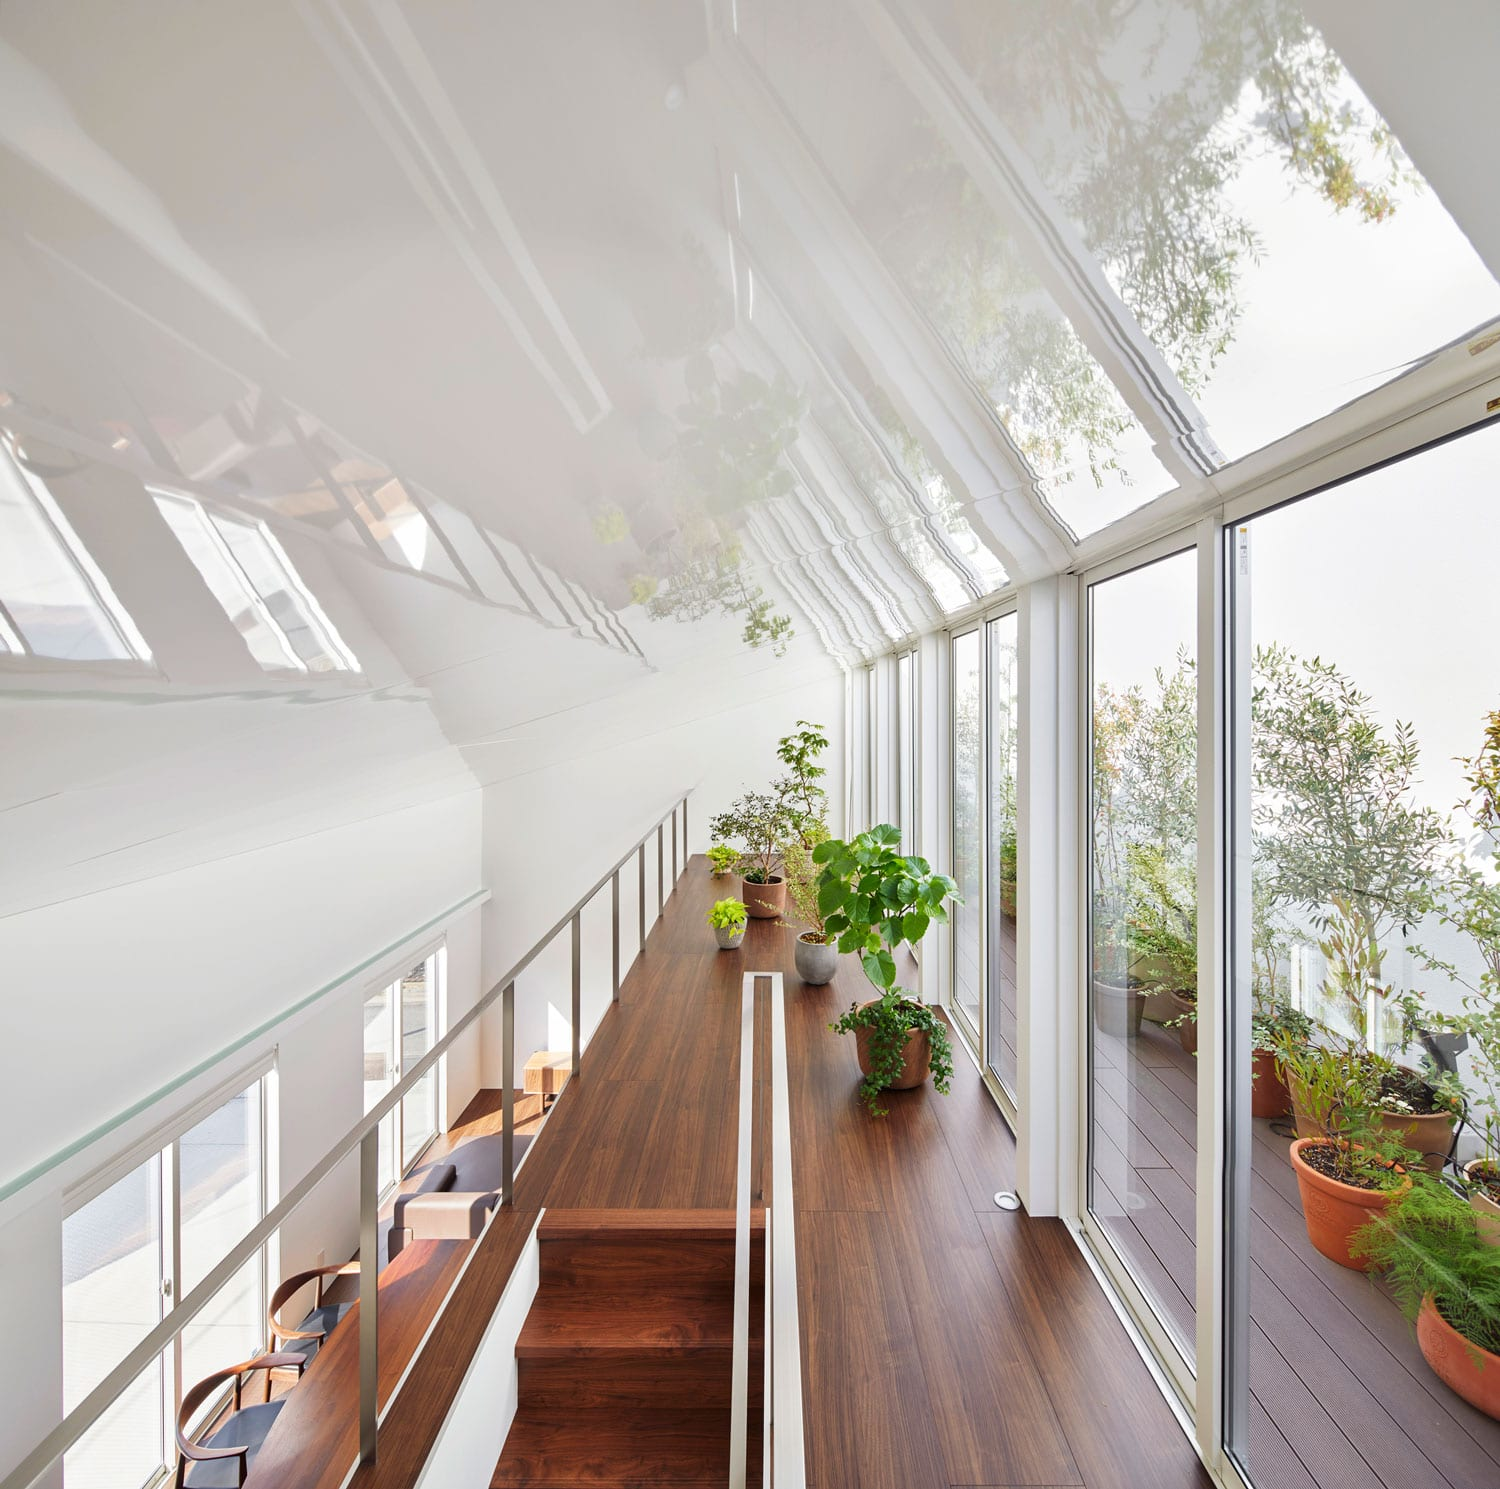 House With Plants In Japan By Kamakurastudio Yellowtrace